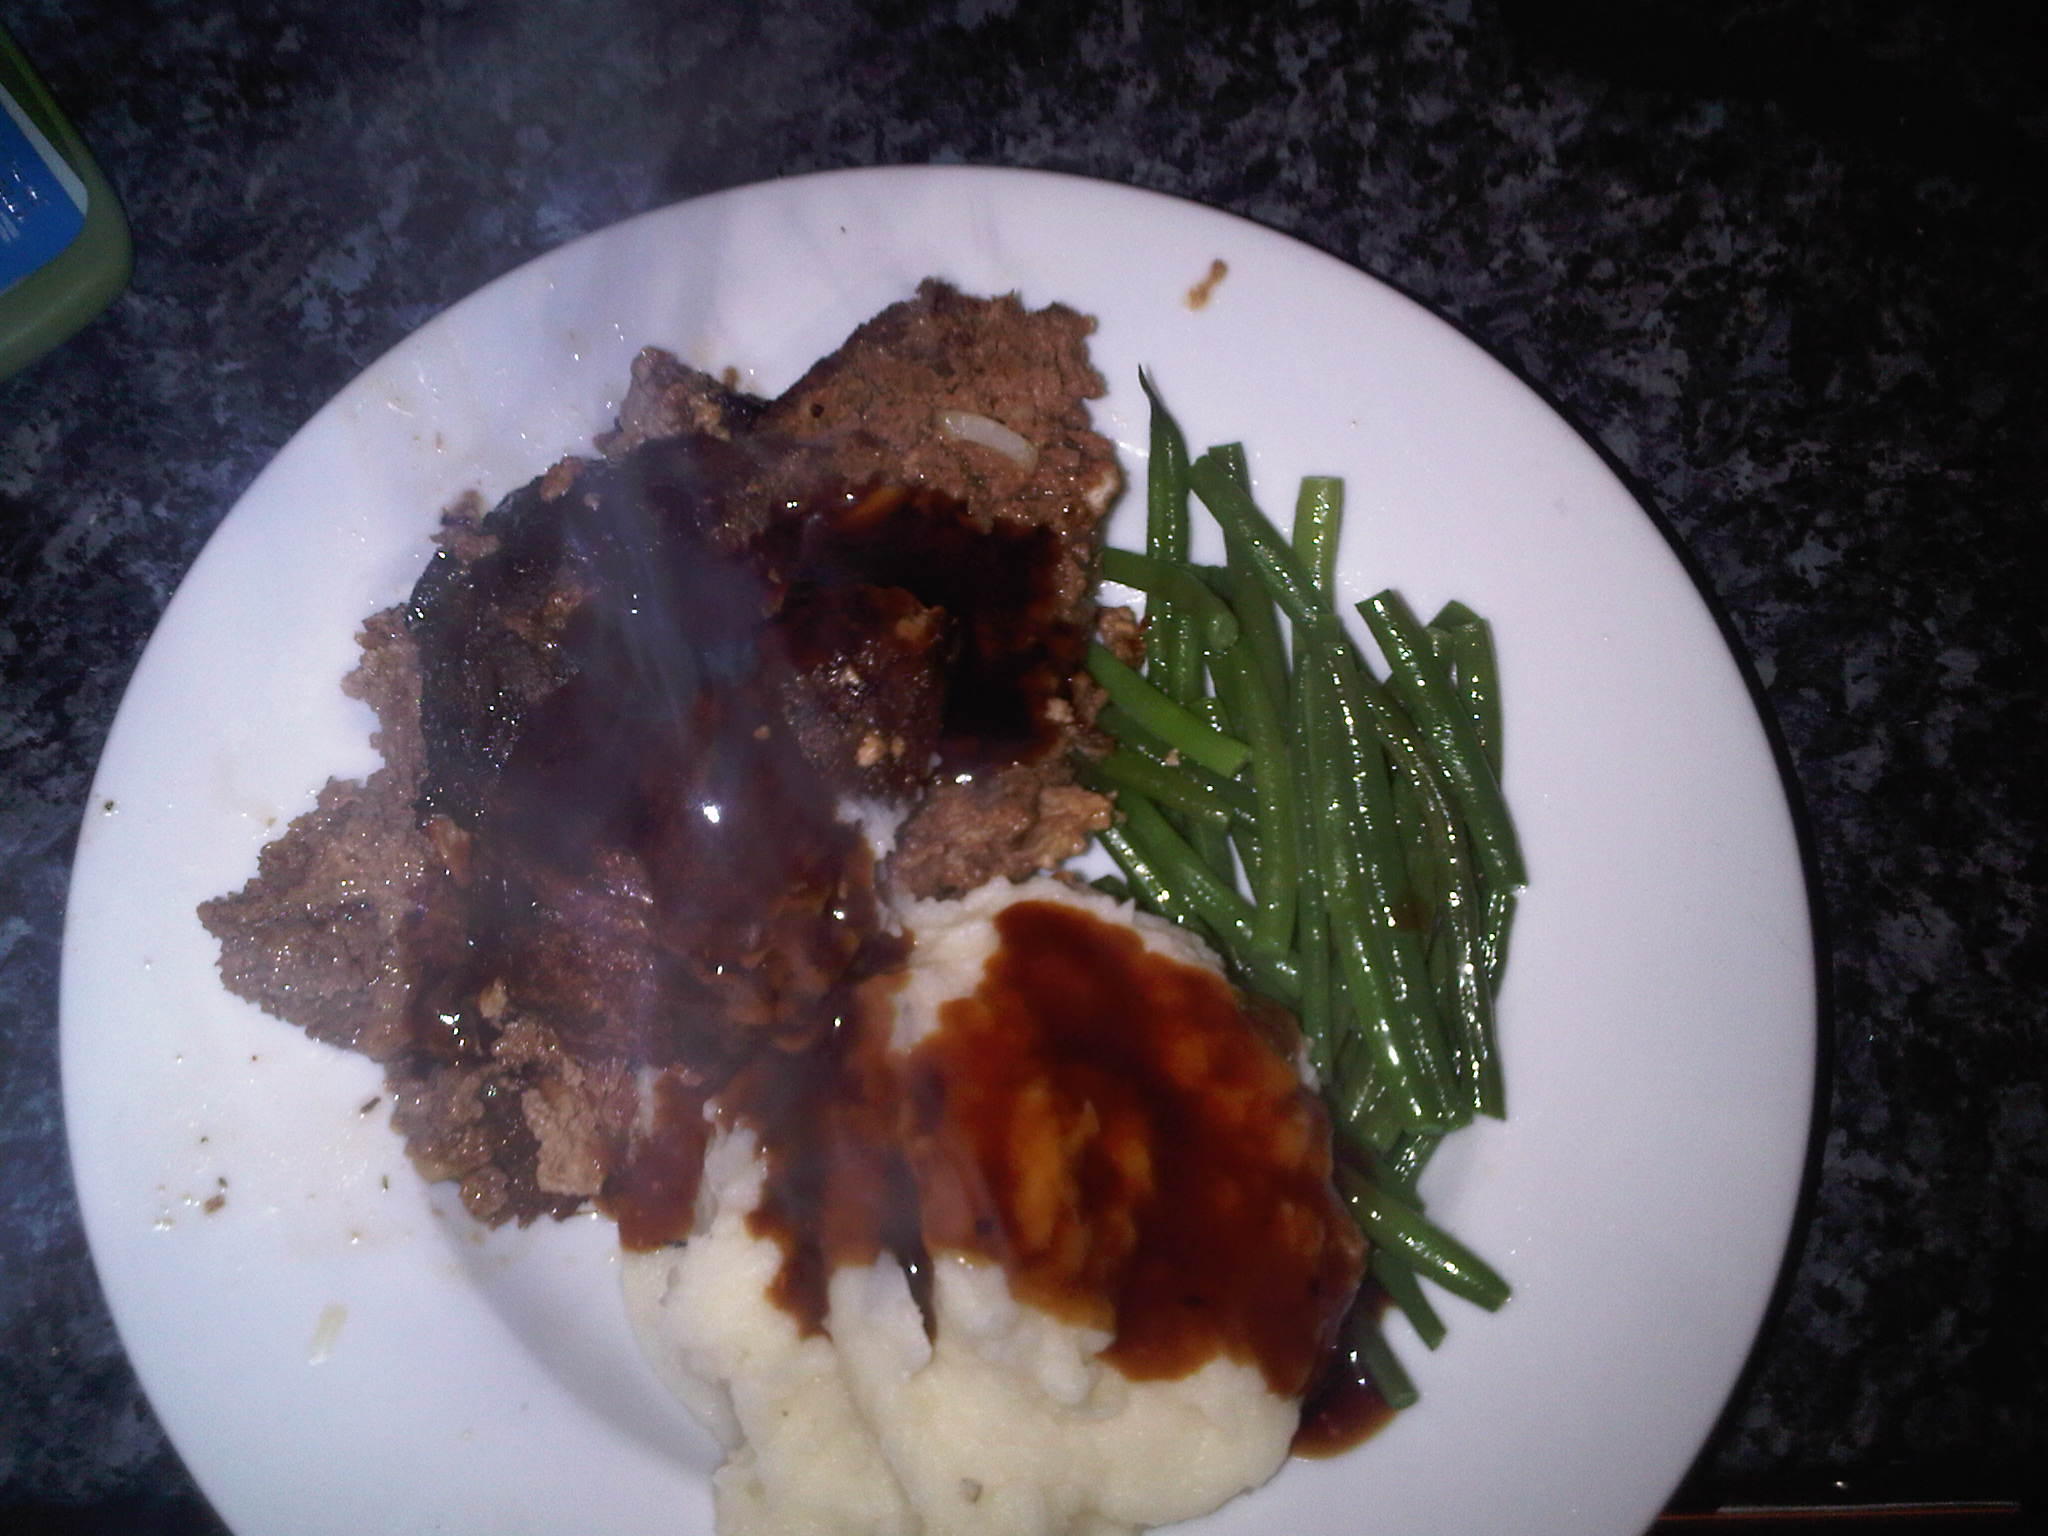 home in london :: Was really missing the states and made my self a standard meatloaf, mash potatoes with gravy and green beans dinner...it was amazing, I've definitely mastered the loaf!